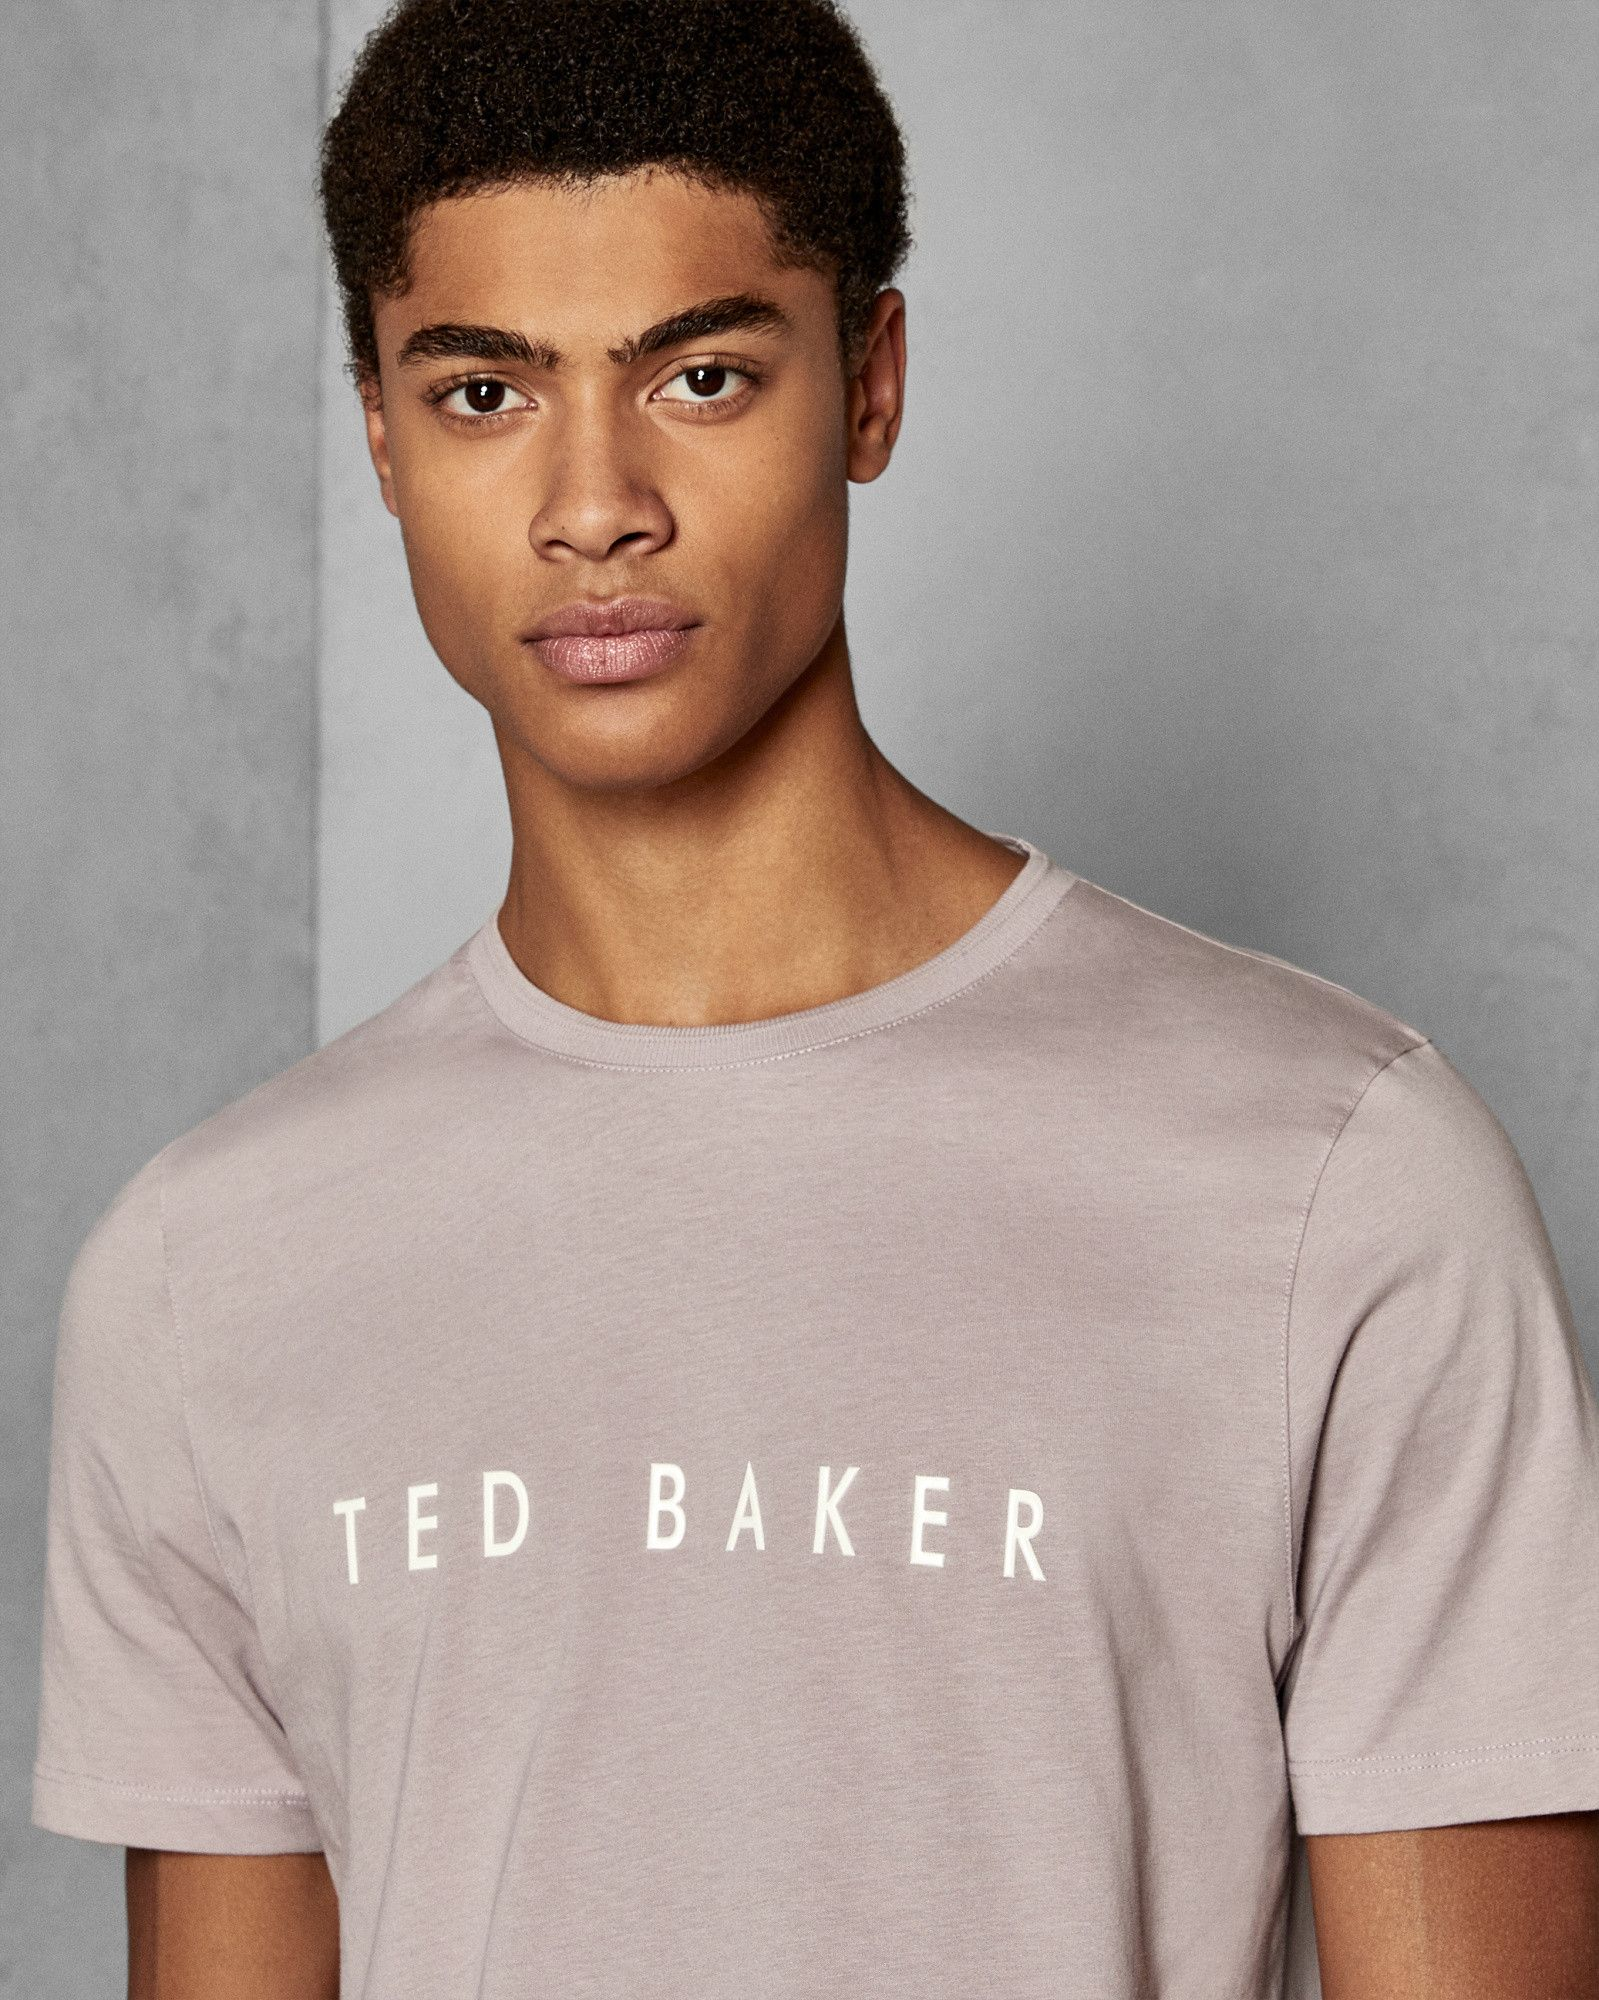 78274af579c Branded Cotton T-shirt | Products in 2019 | Mens tops, Cotton, T shirt